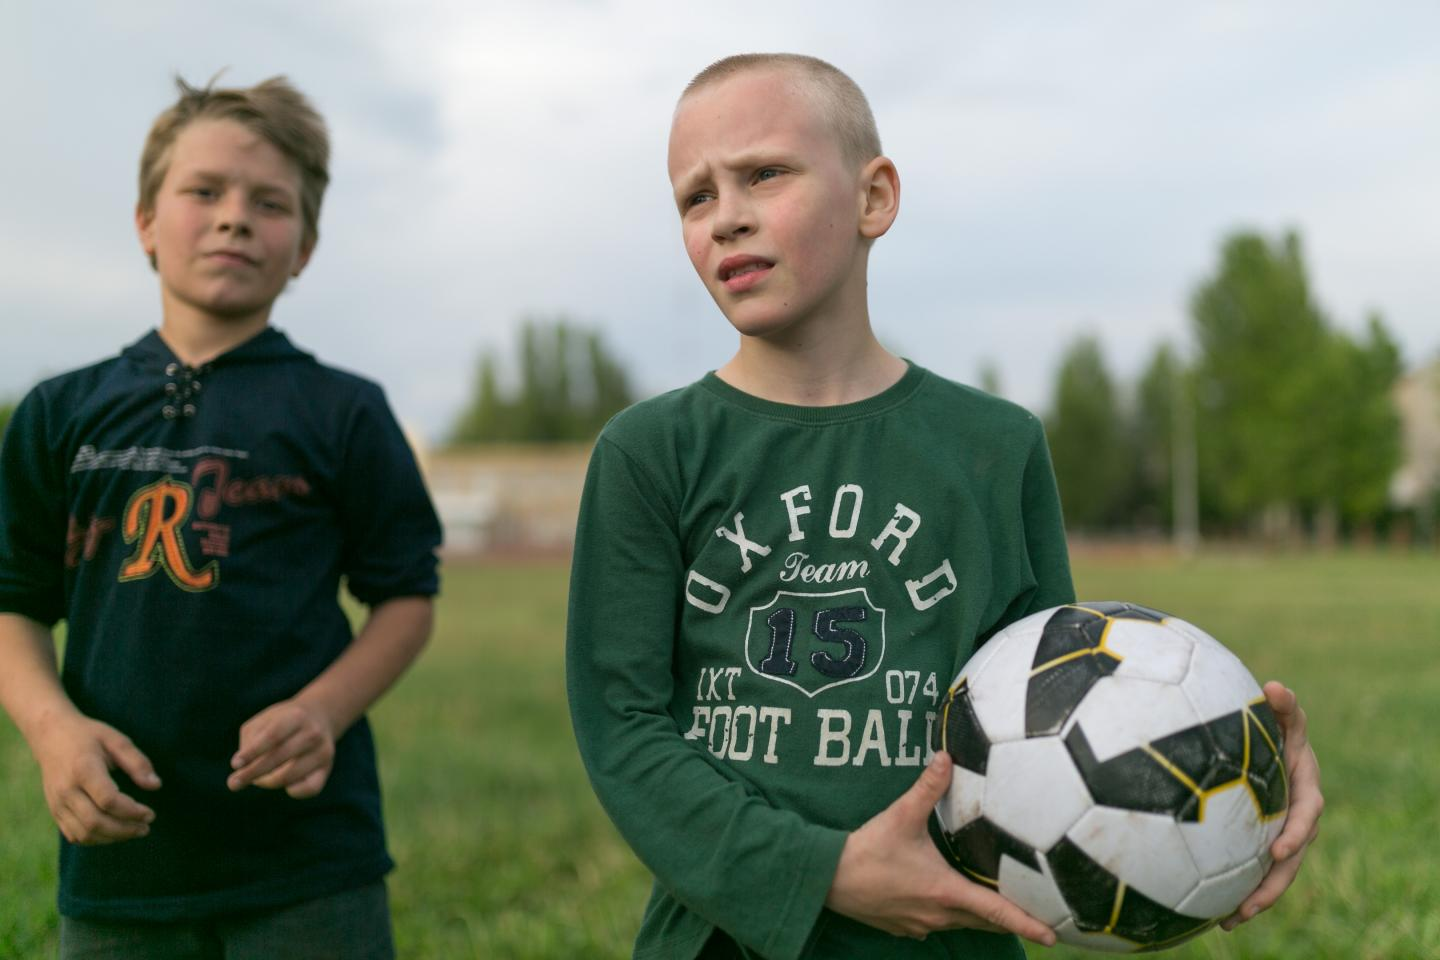 Two boys stand on a football field, Ukraine